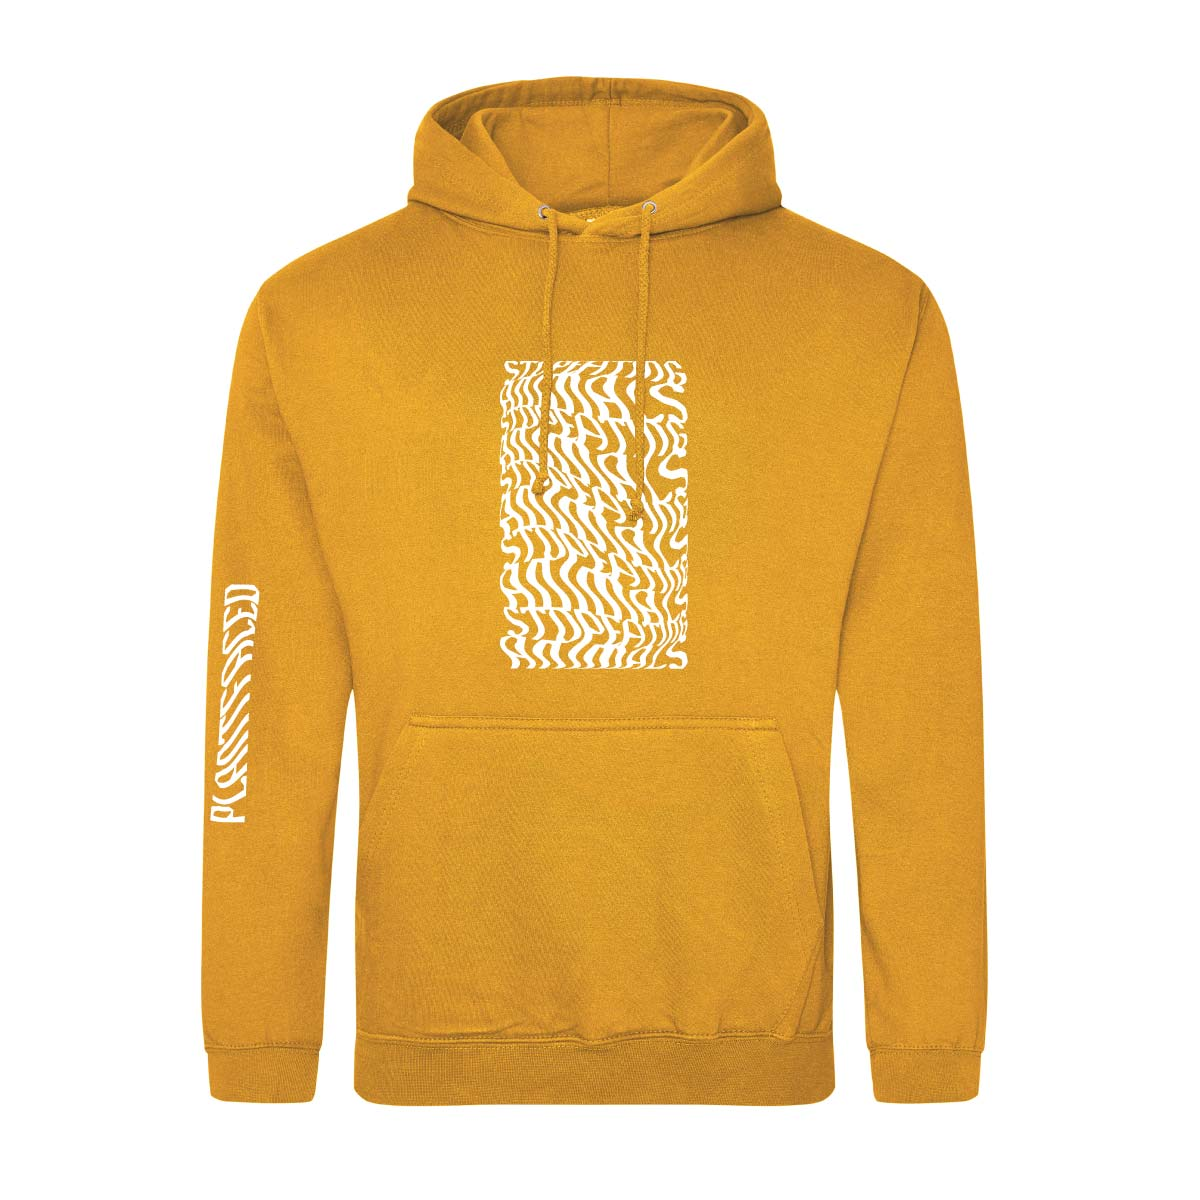 Illusions Hoodie - Stop Eating Animals - Mustard Yellow